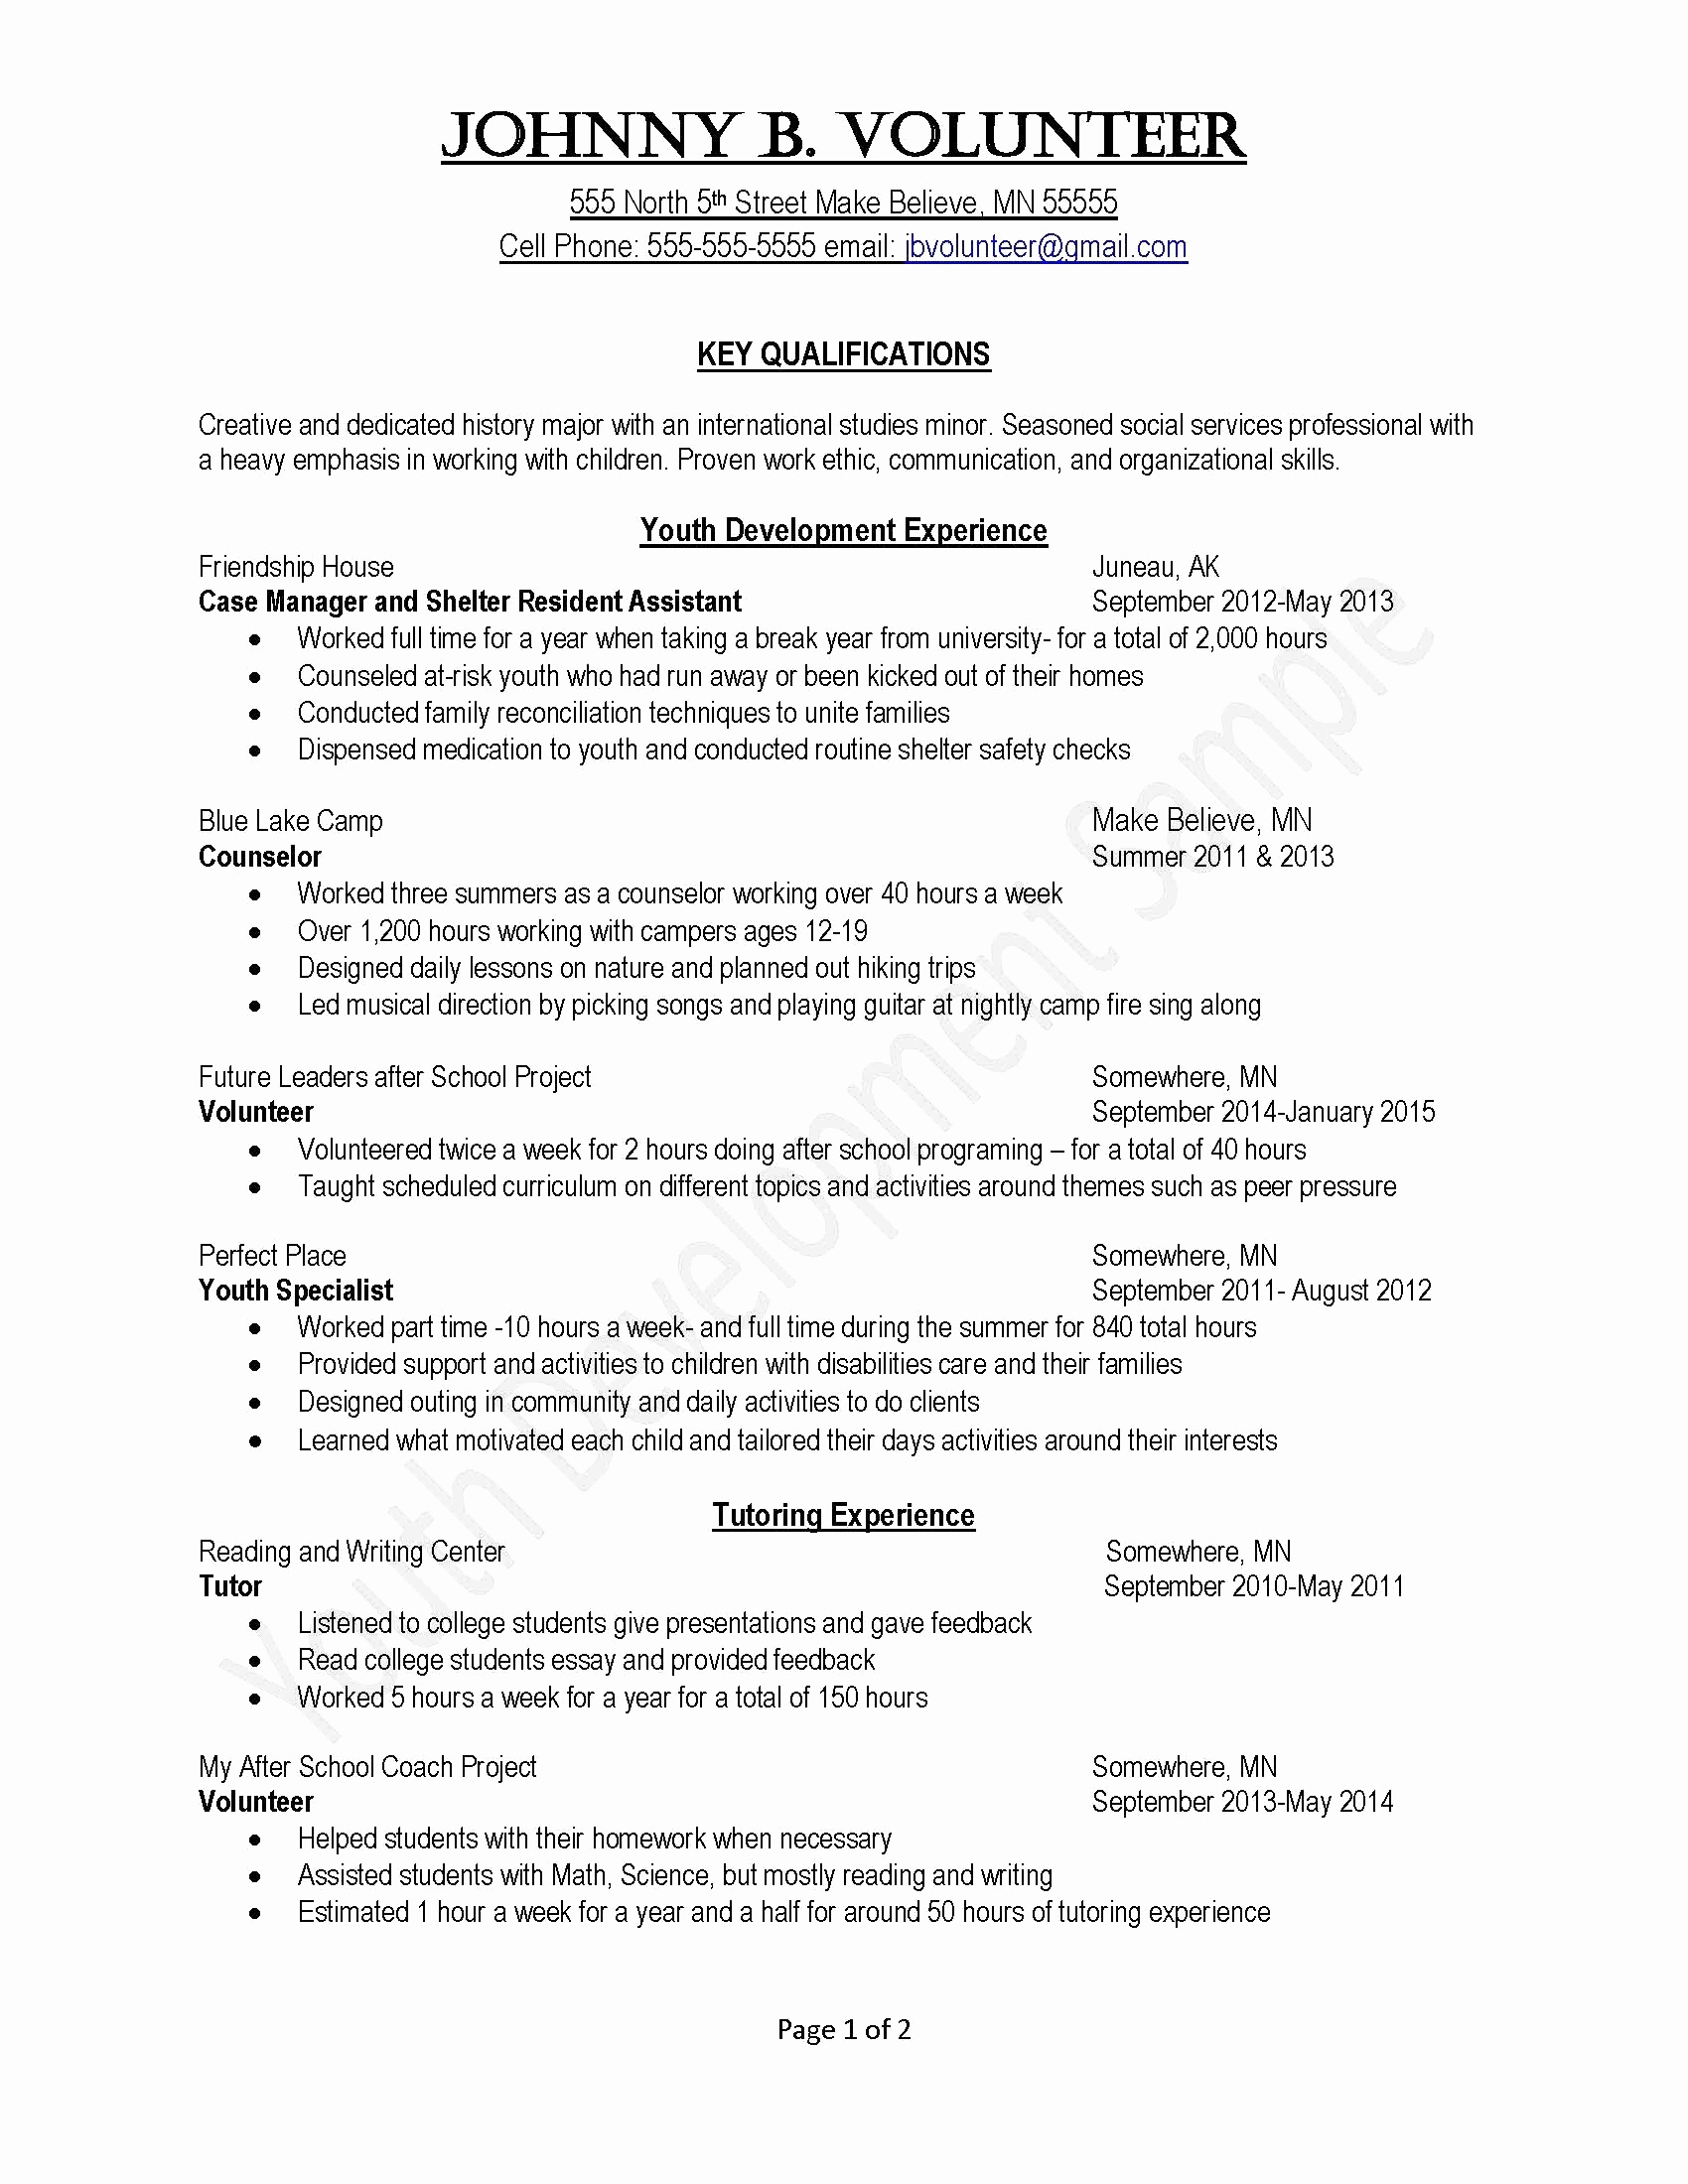 Electronic Cover Letter Template - Good Cover Letters for Jobs Unique Simple Cover Letter Template